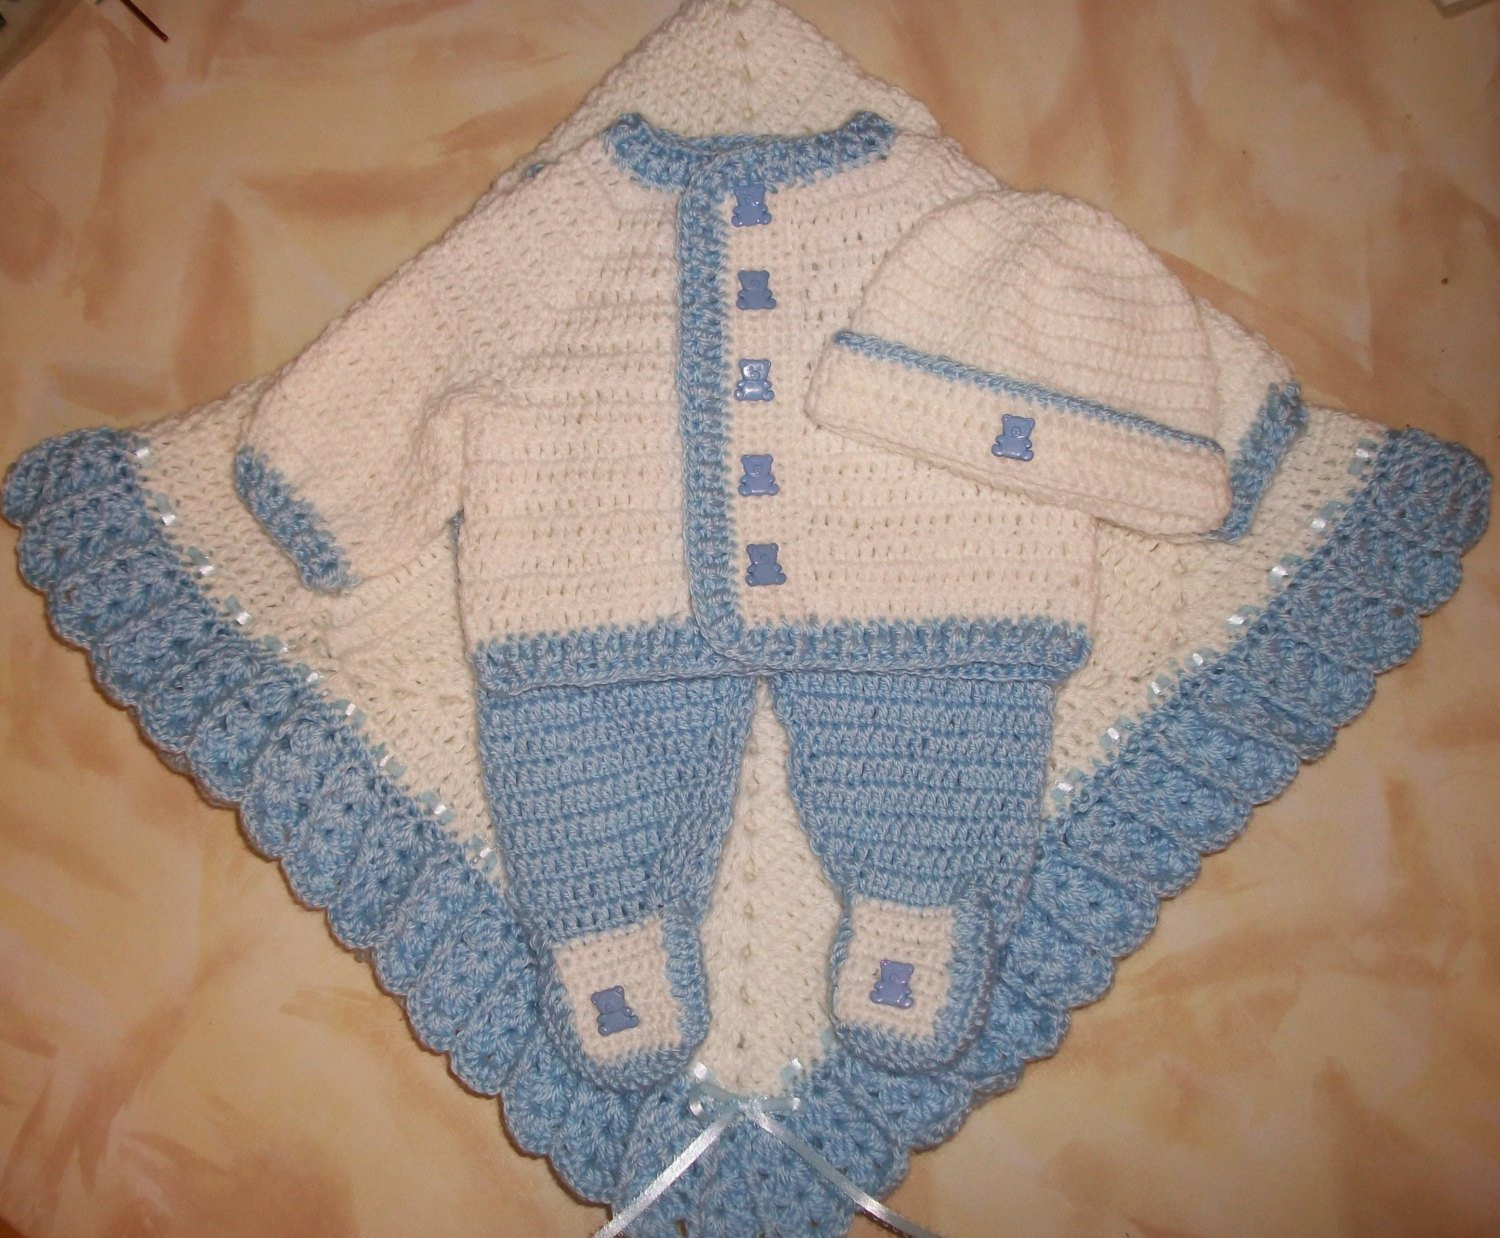 Crochet Baby Girl Outfits Best Of Crochet Baby Boy Sweater Set Layette with Leggings Perfect Of Perfect 41 Pictures Crochet Baby Girl Outfits